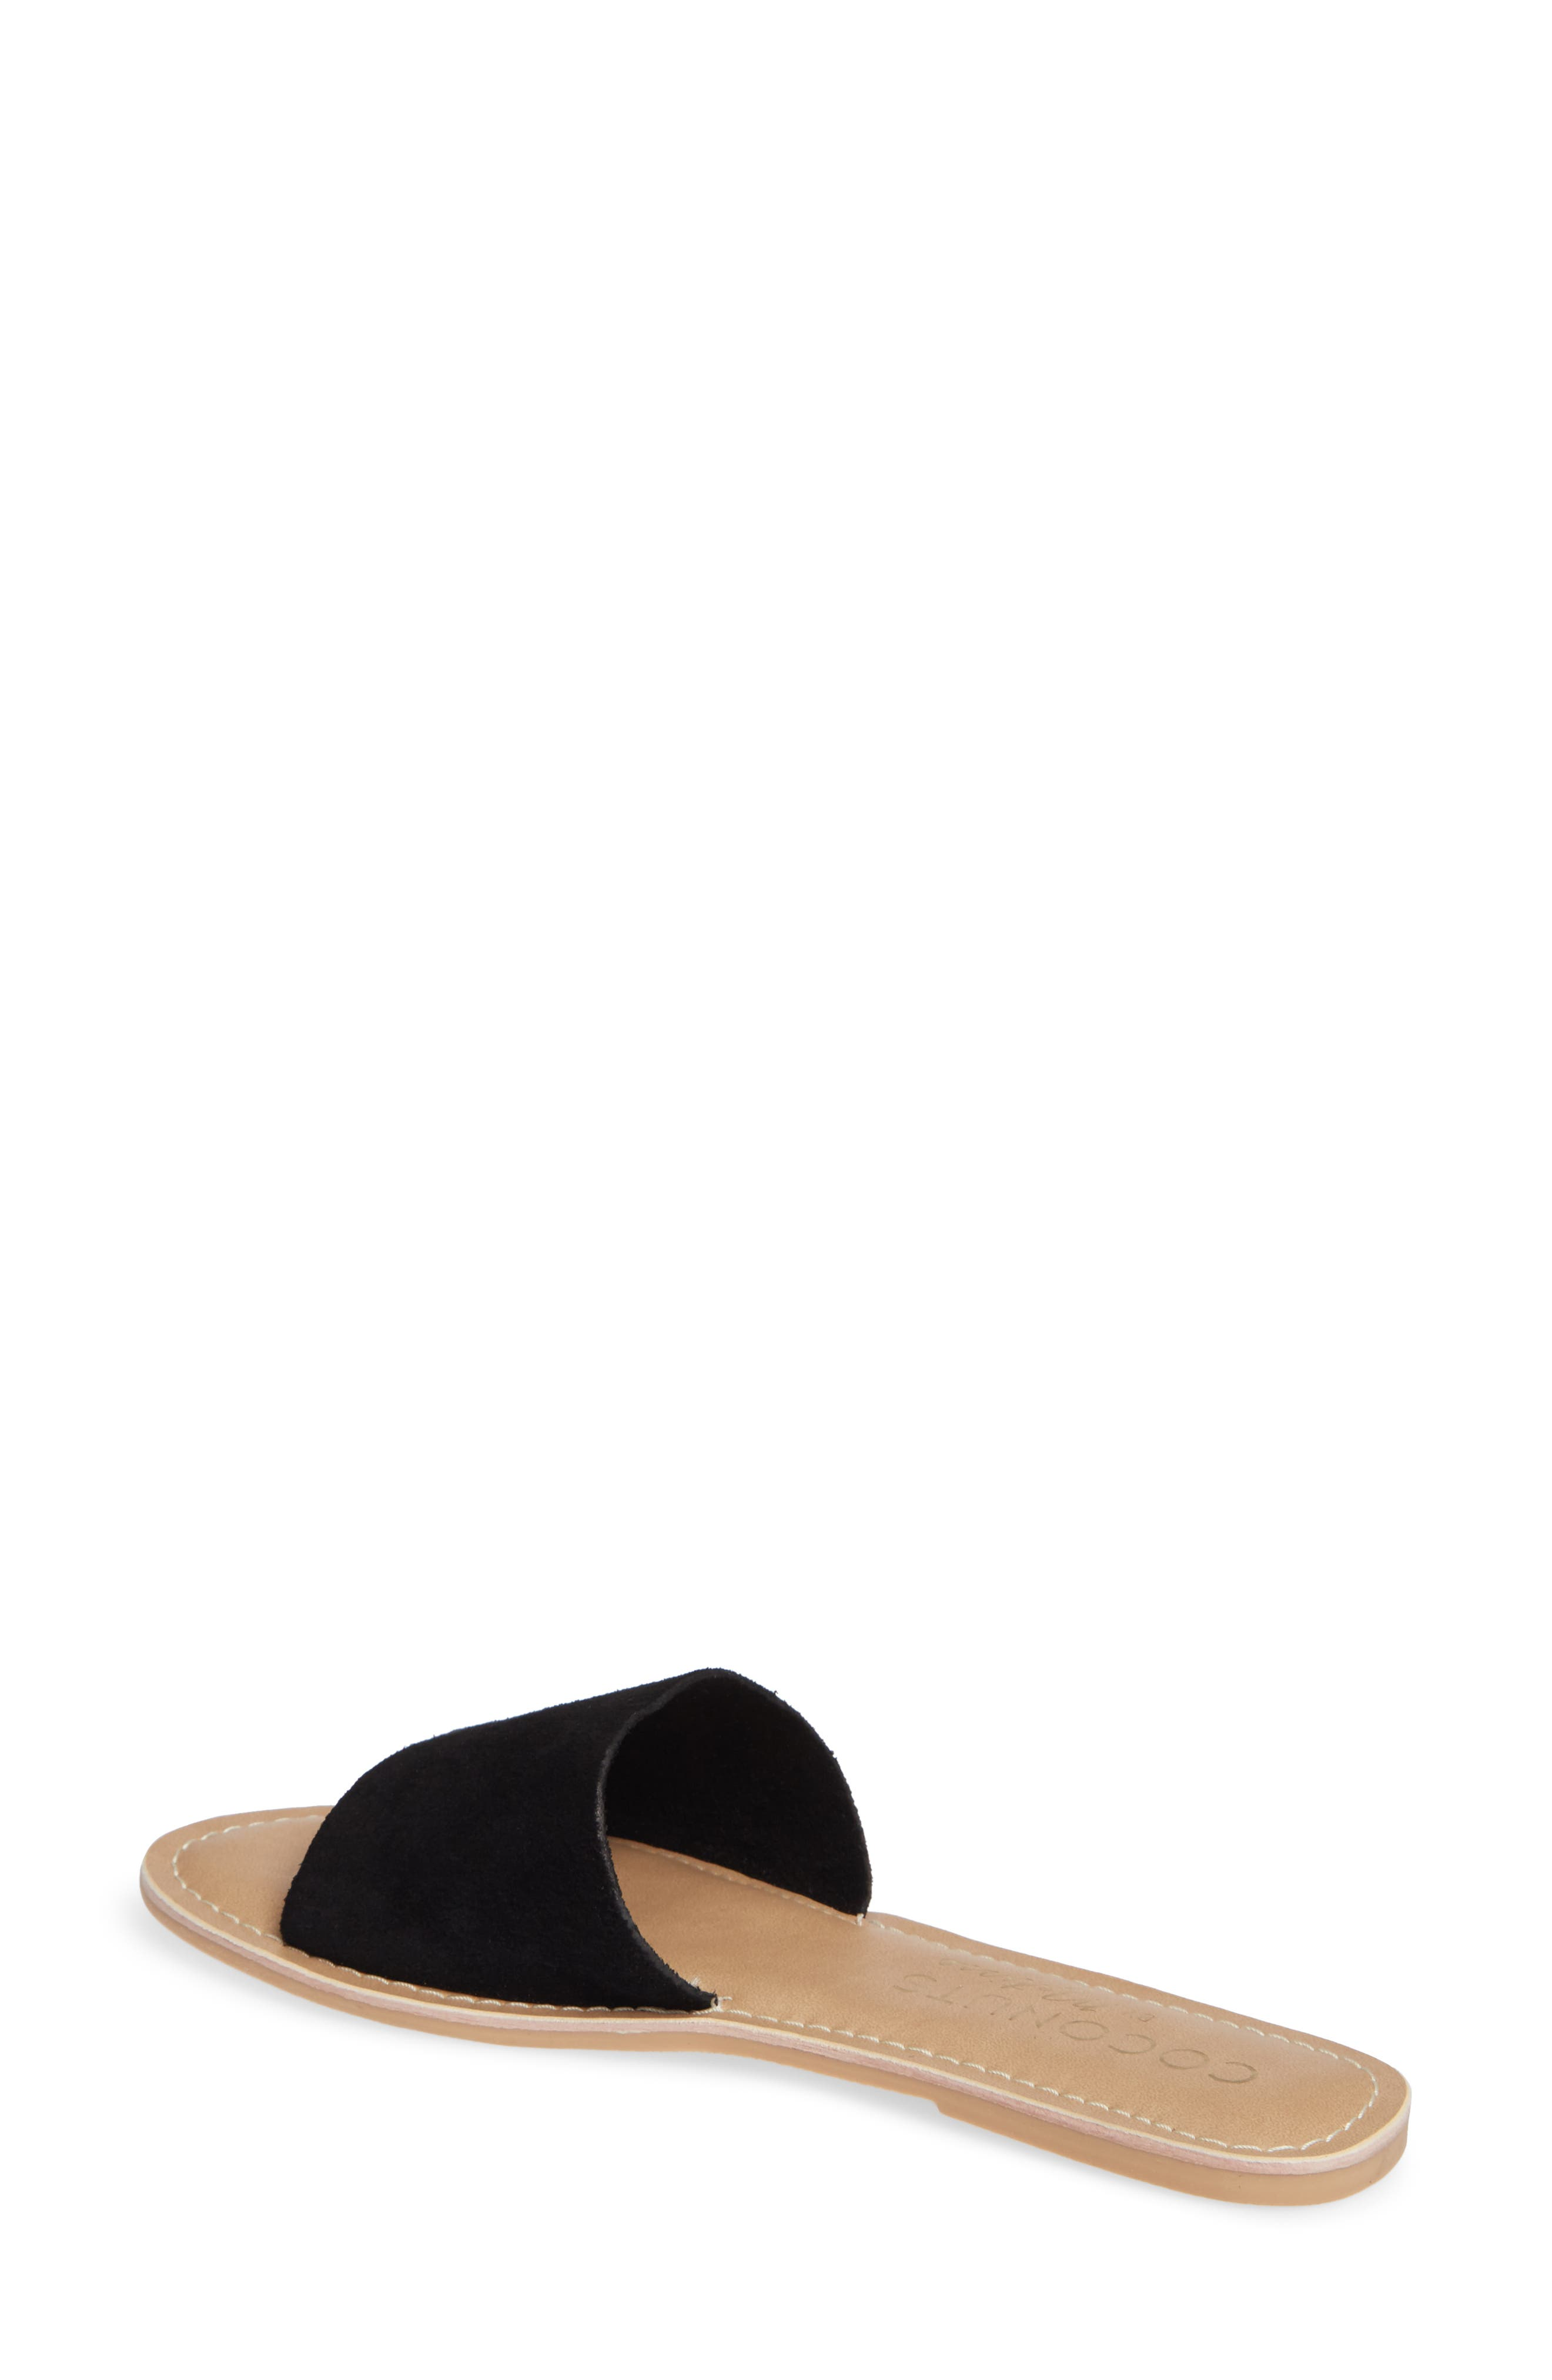 Cabana Slide Sandal,                             Alternate thumbnail 2, color,                             BLACK SUEDE